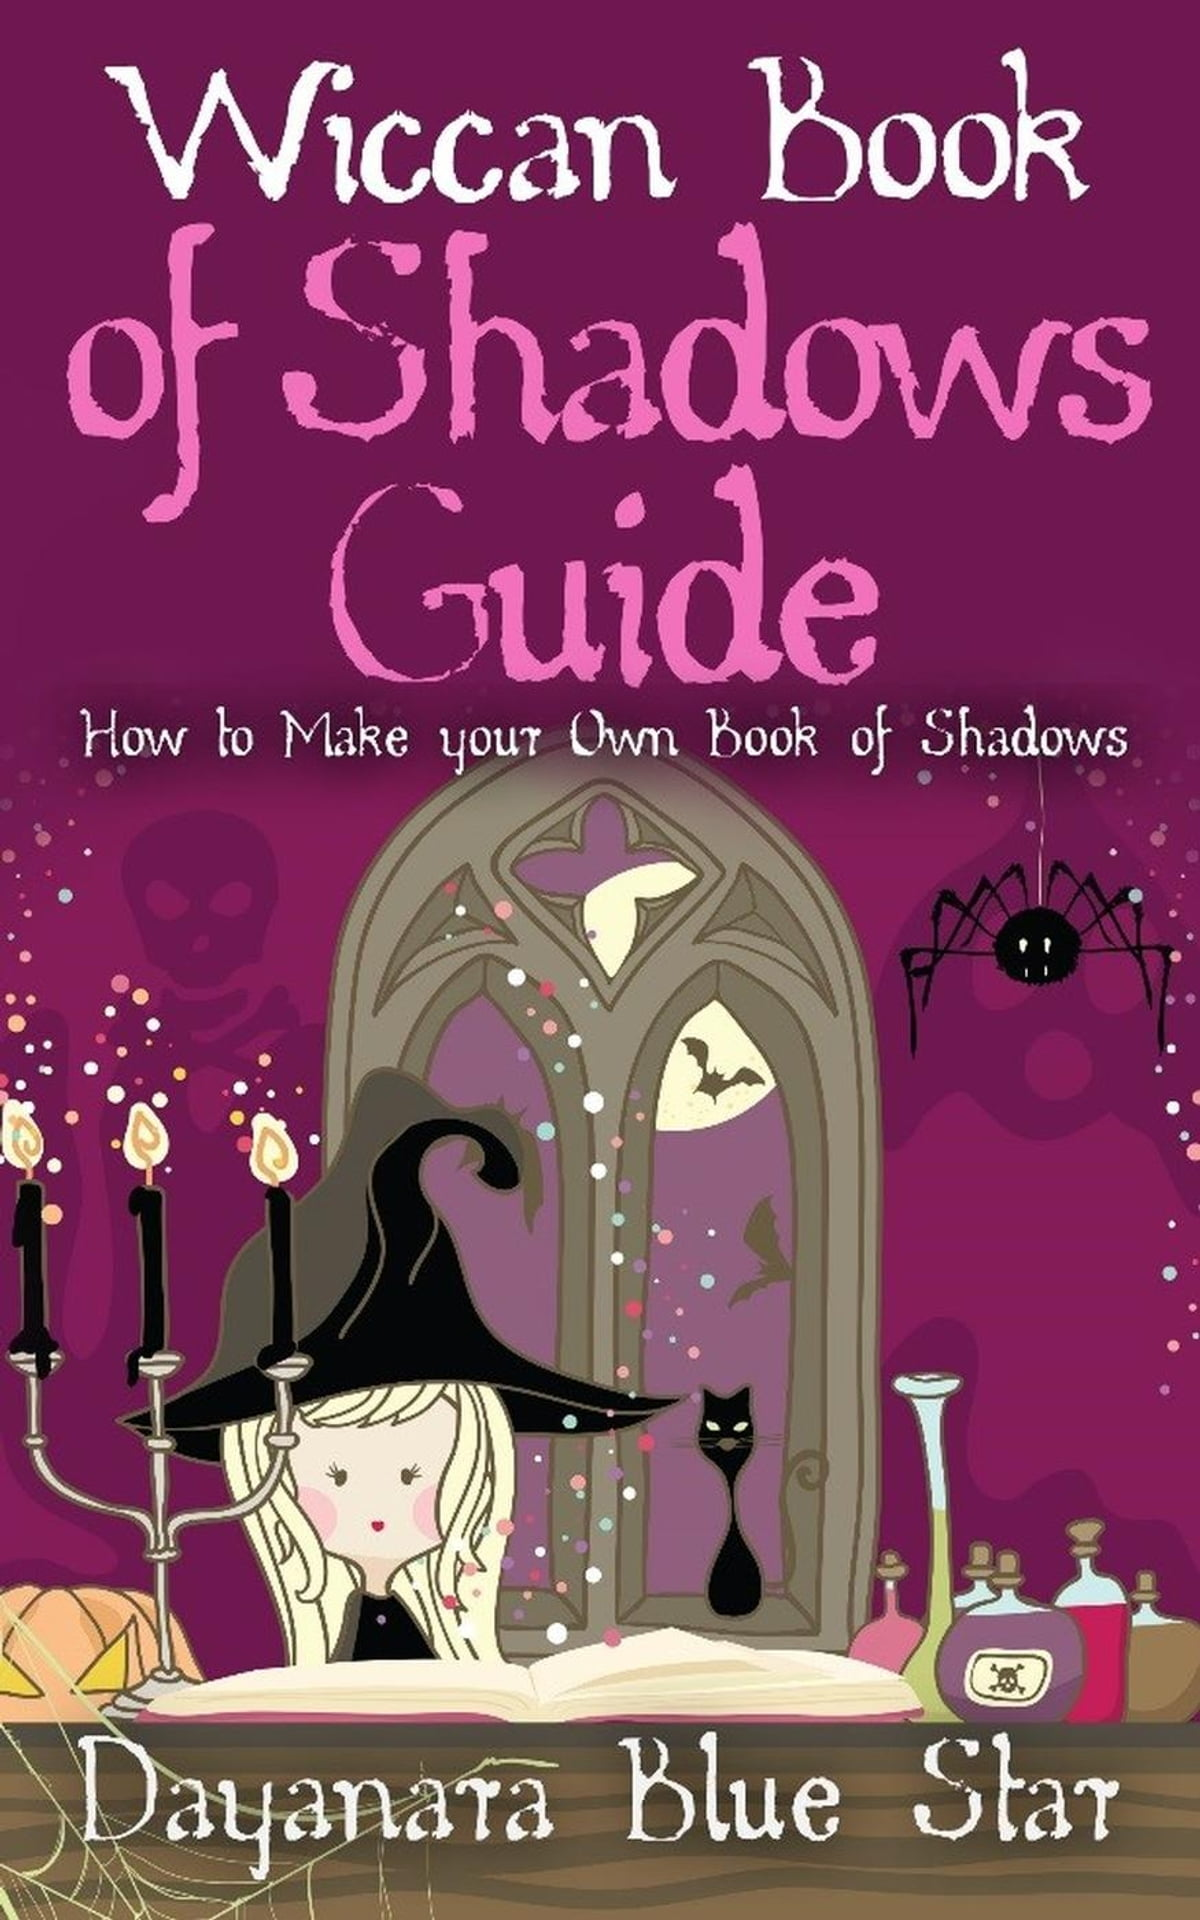 Wiccan Book Of Shadows Guide How To Make Your Own Book Of Shadows Ebook By Dayanara Blue Star 9781386606970 Rakuten Kobo United States